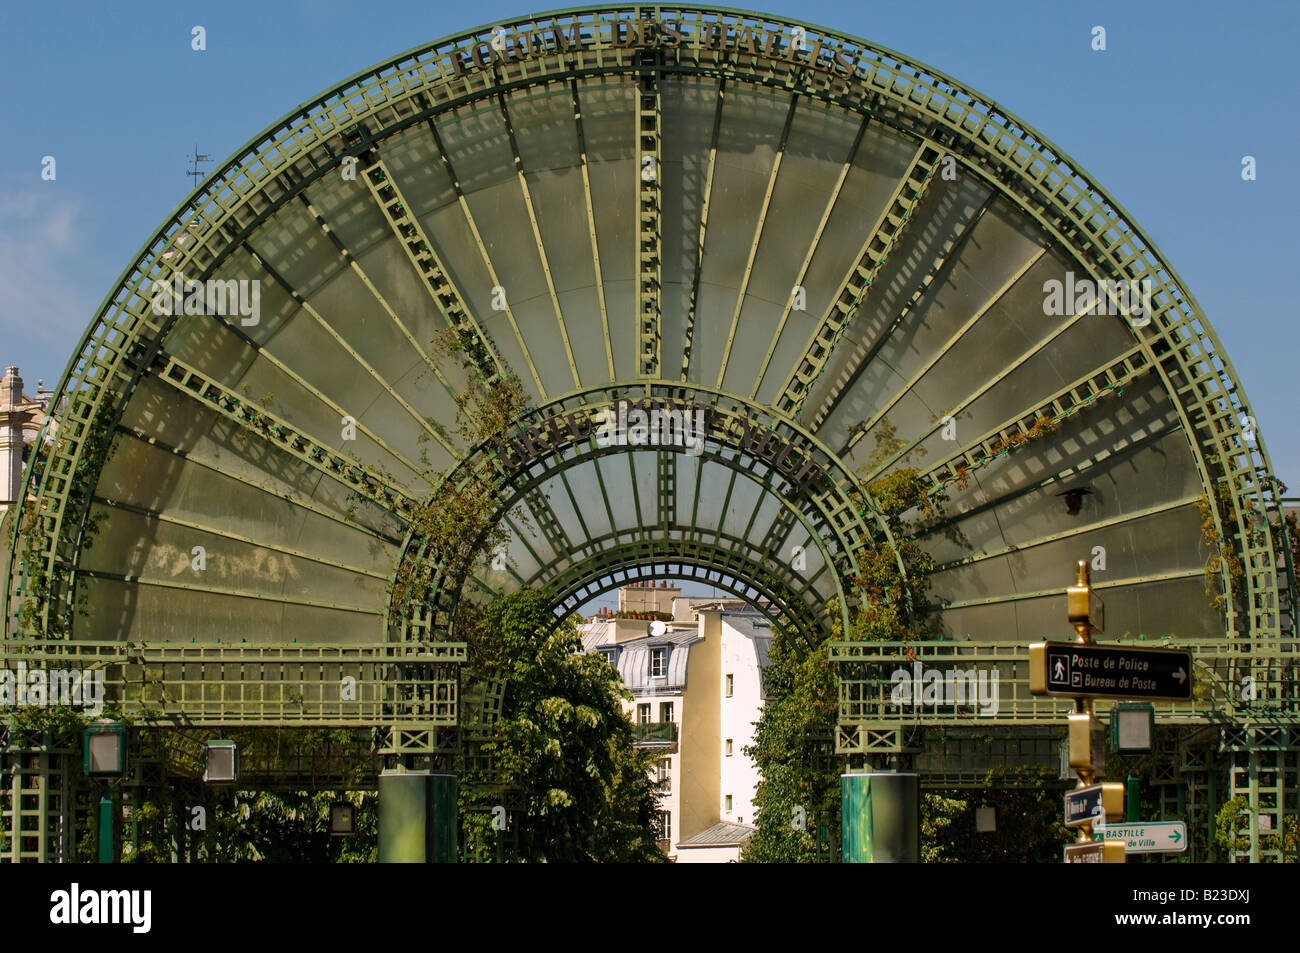 forum des halles shopping center entrance paris stock photo royalty free image 18516474 alamy. Black Bedroom Furniture Sets. Home Design Ideas